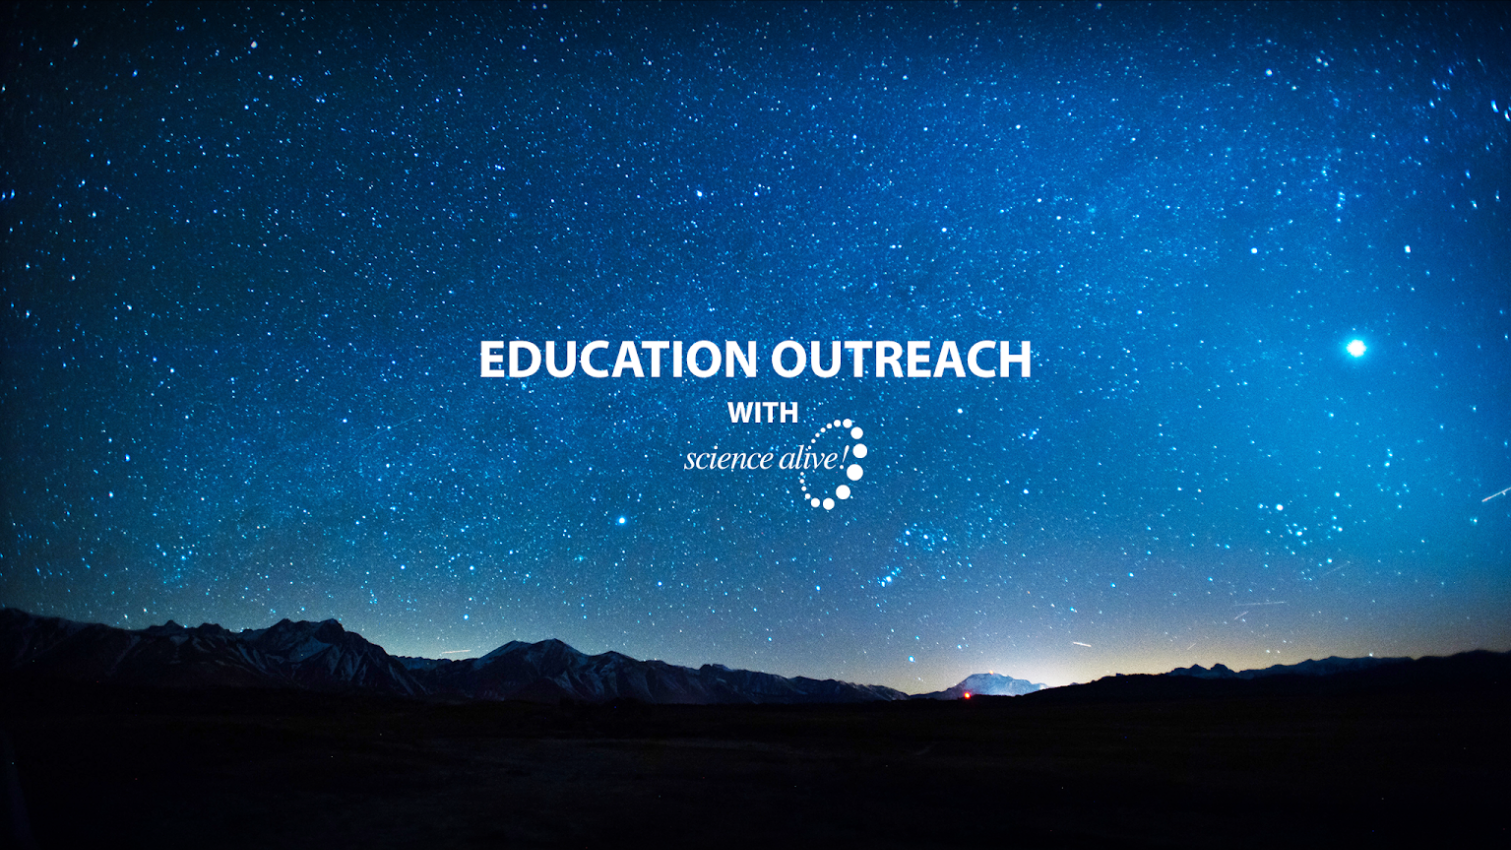 education-outreach-banner.png